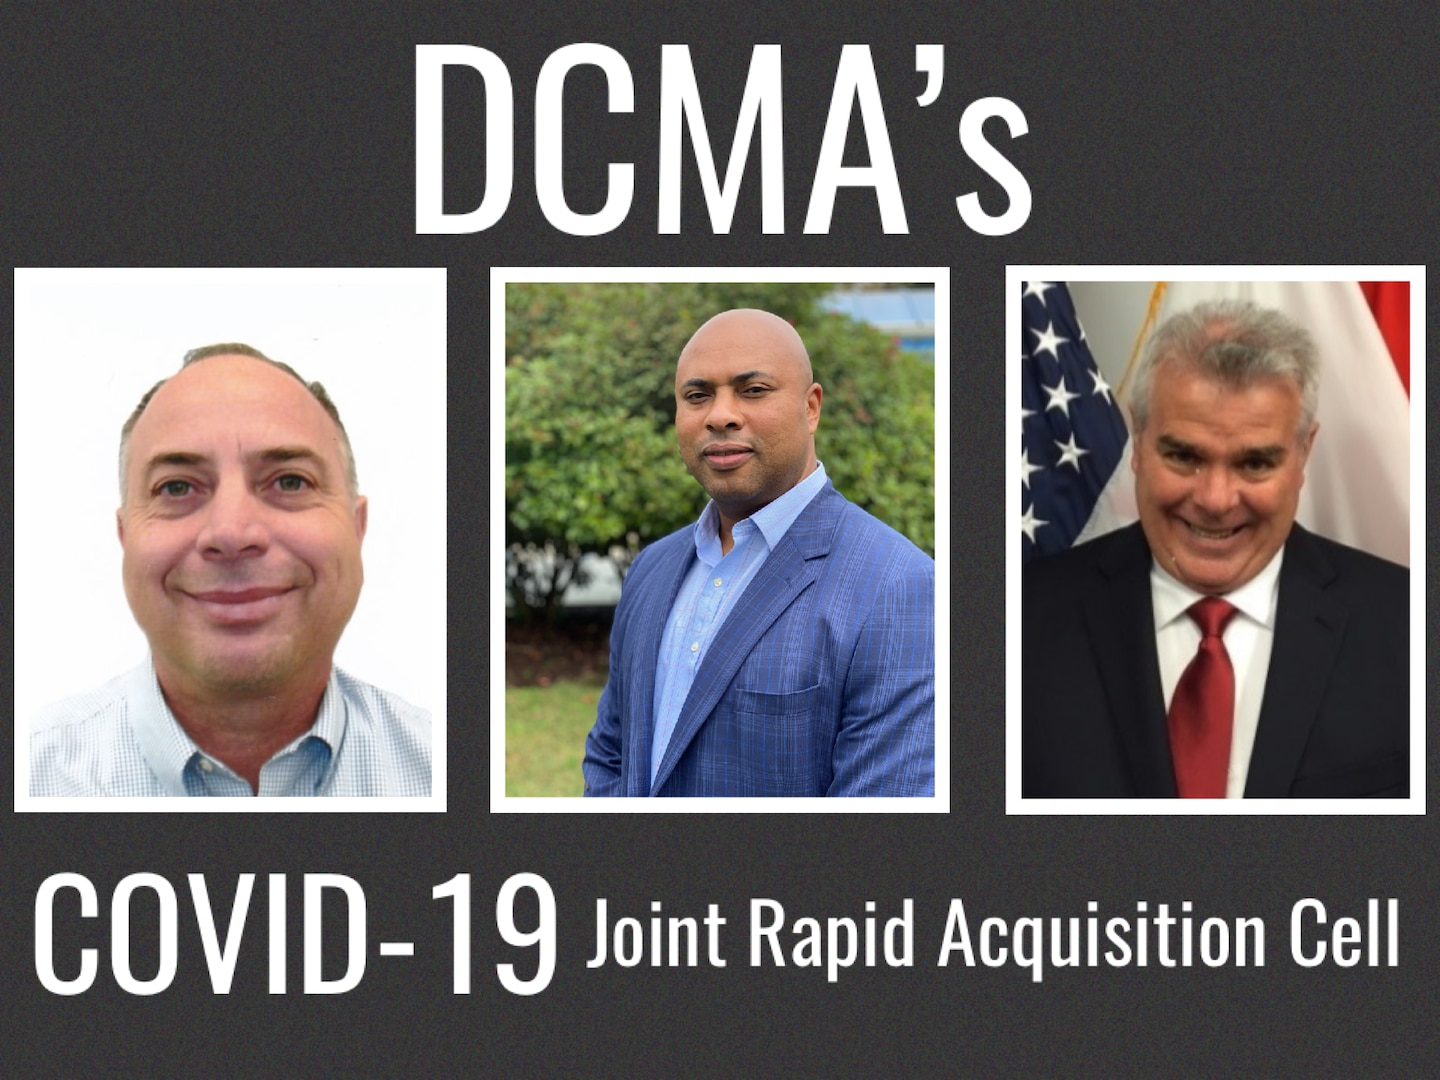 """There are portraits of three men with text that reads: """" DCMA's COVID-19 Joint Rapid Acquisition Cell."""""""